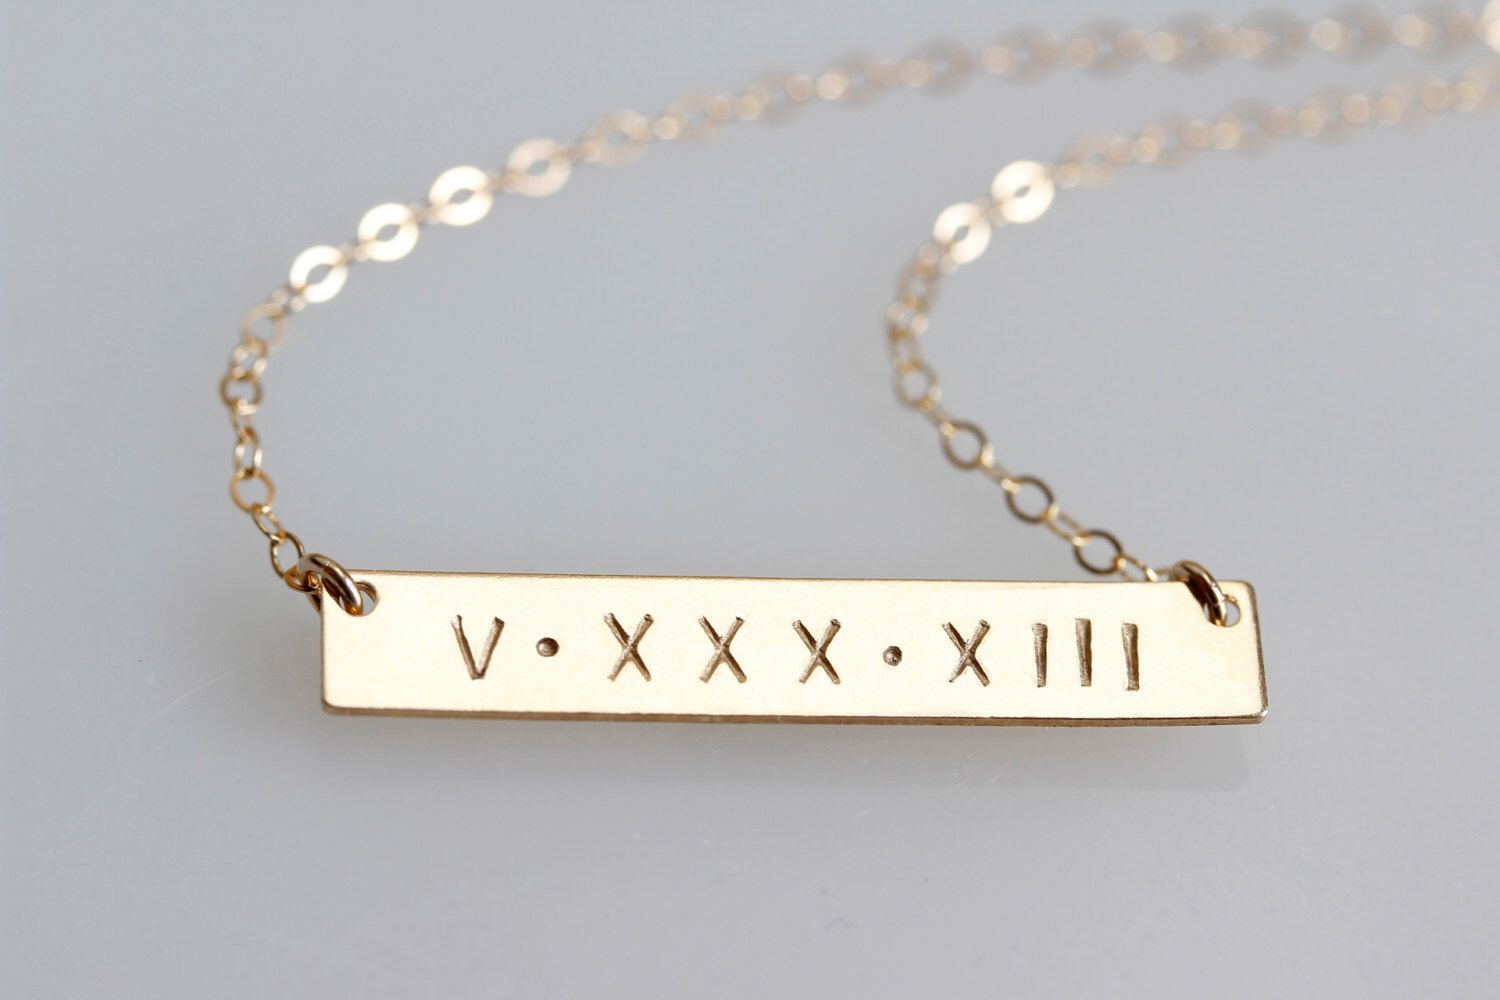 Gold Bar Necklace, ROMAN NUMERAL Necklace, Gold Date Bar, Date Necklace, Initial Bar, Name necklace, Horizontal bar, Monogram necklace by JewelryBlues on Etsy https://www.etsy.com/listing/181859912/gold-bar-necklace-roman-numeral-necklace